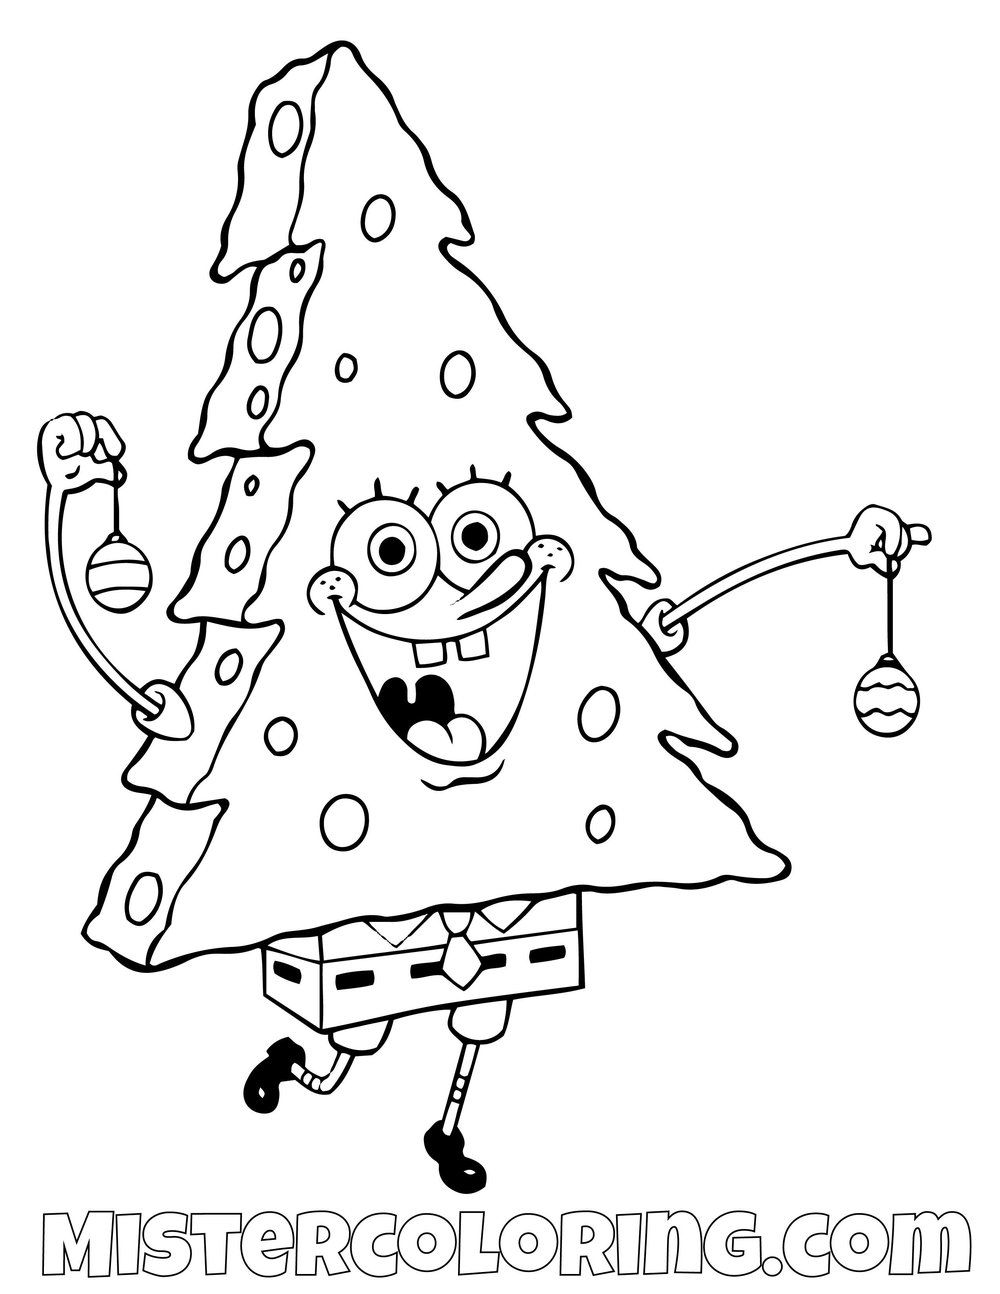 Spongebob Christmas Tree Costume Spongebob Squarepants Coloring